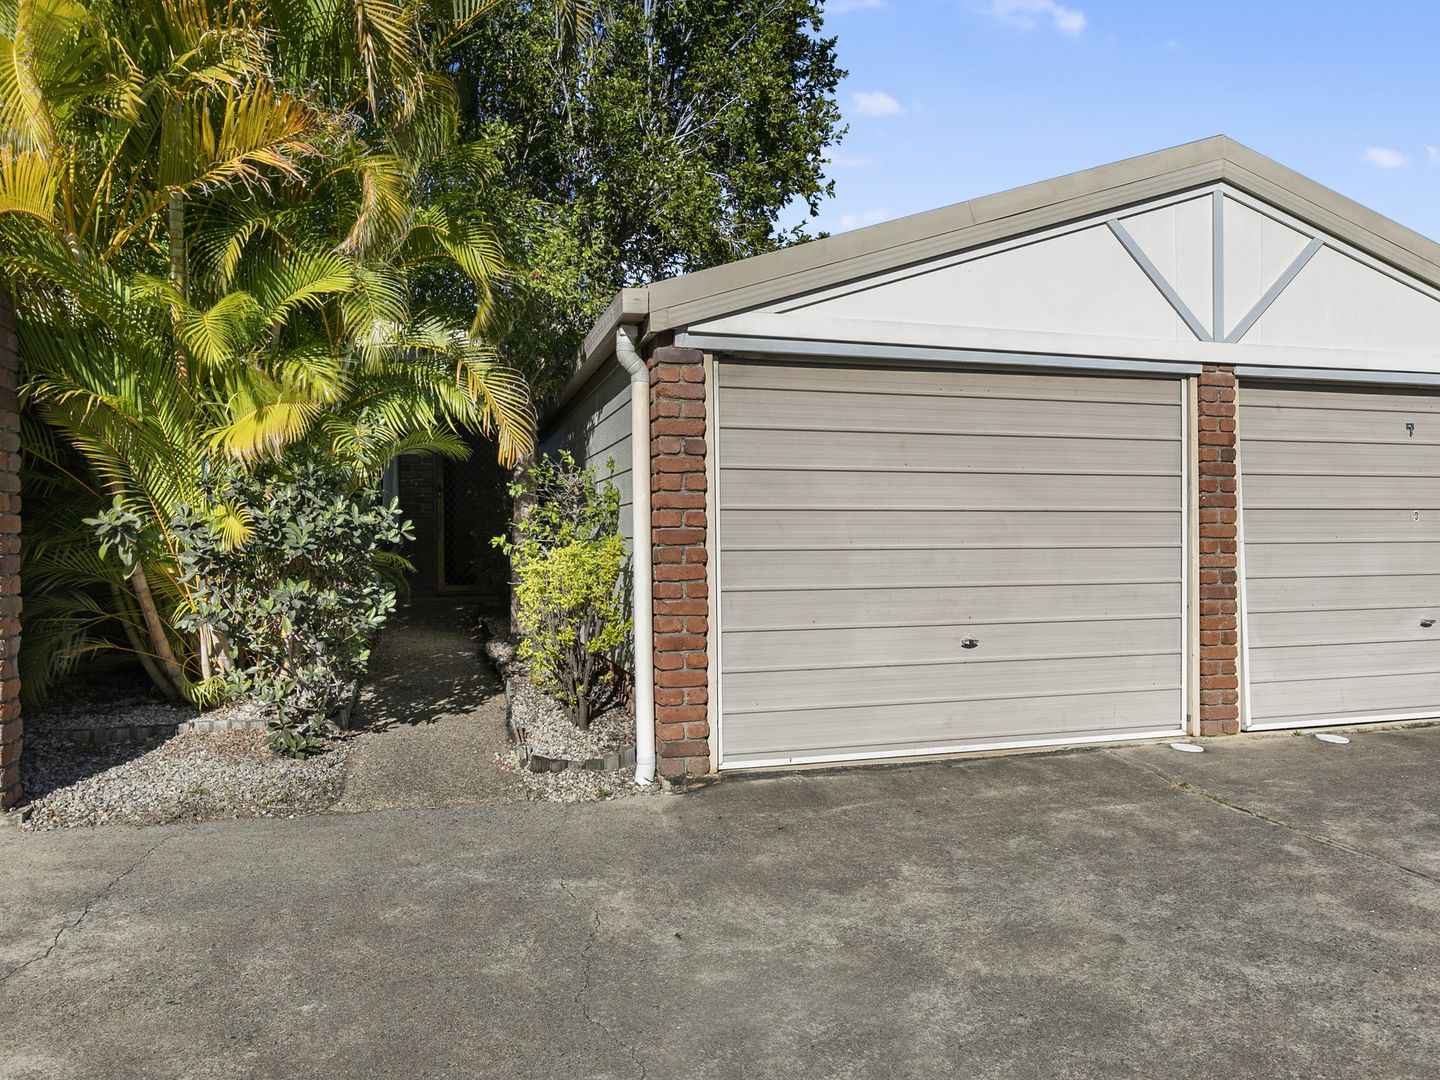 8/50 Junction Rd, Morningside QLD 4170, Image 0